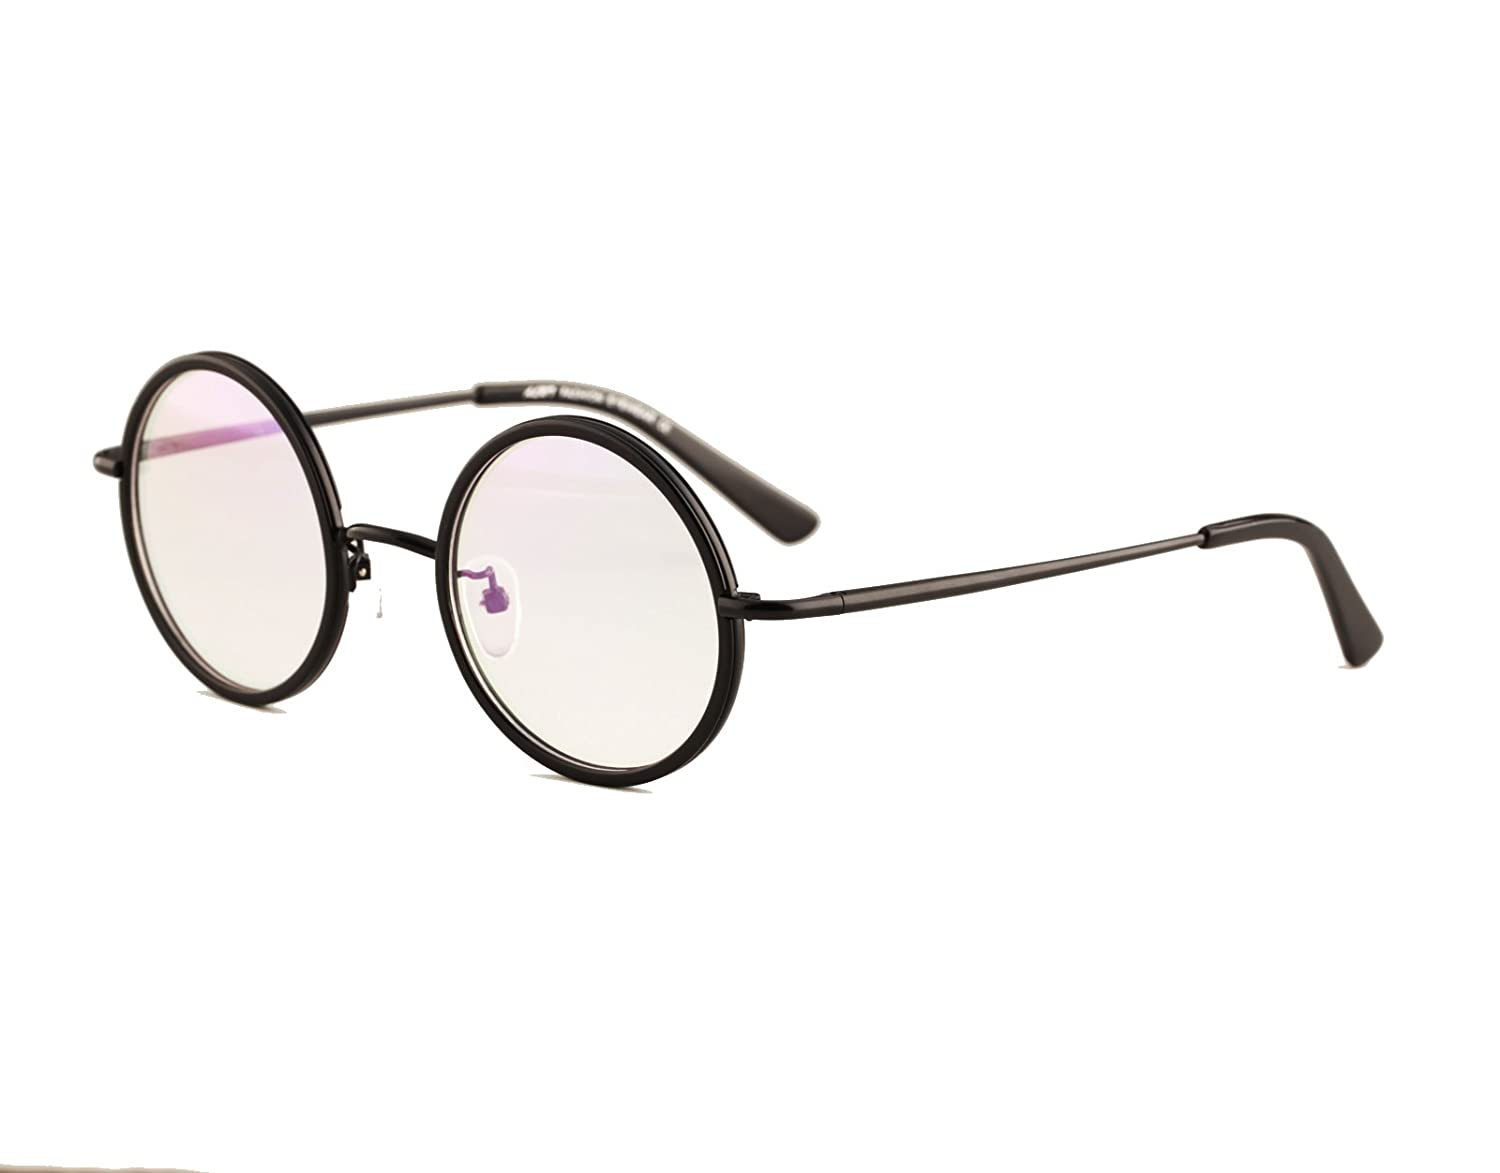 45913d497ad Agstum Vintage Retro Small Round Prescription Optical Eyeglass Frame ...